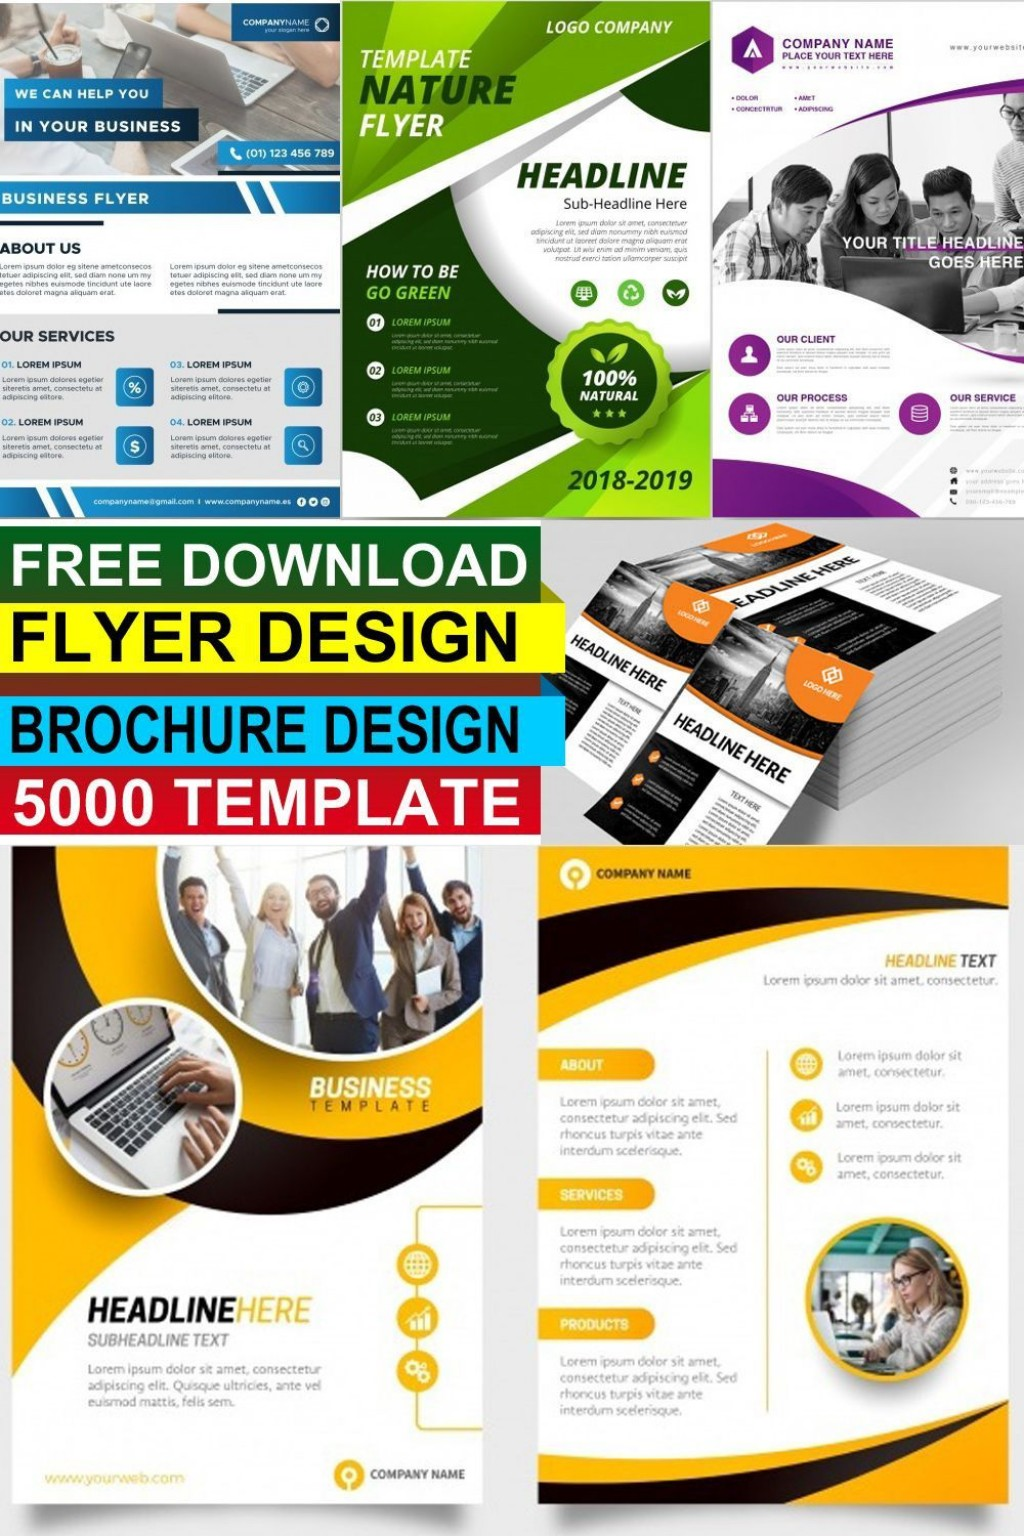 000 Fascinating Free Printable Flyer Template Highest Quality  Templates Christma Word DaycareLarge